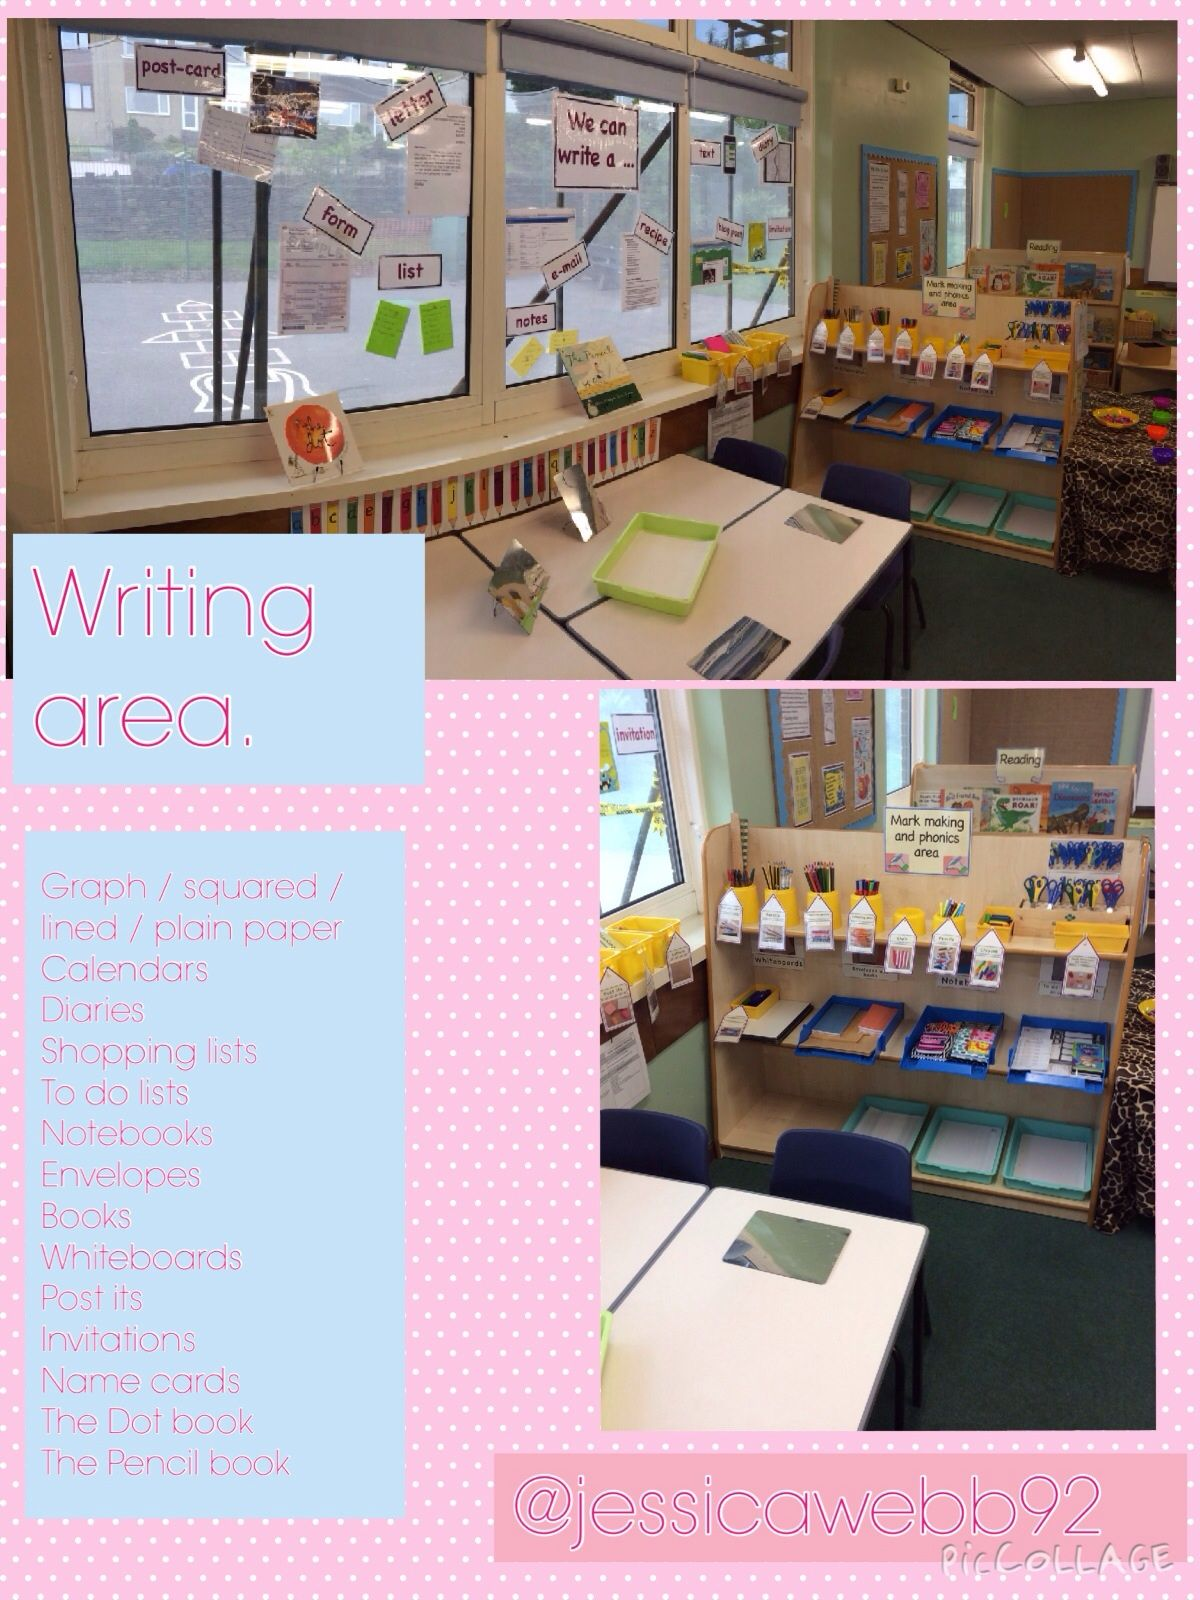 Writing area early years classroom layouts pinterest writing writing area stopboris Choice Image